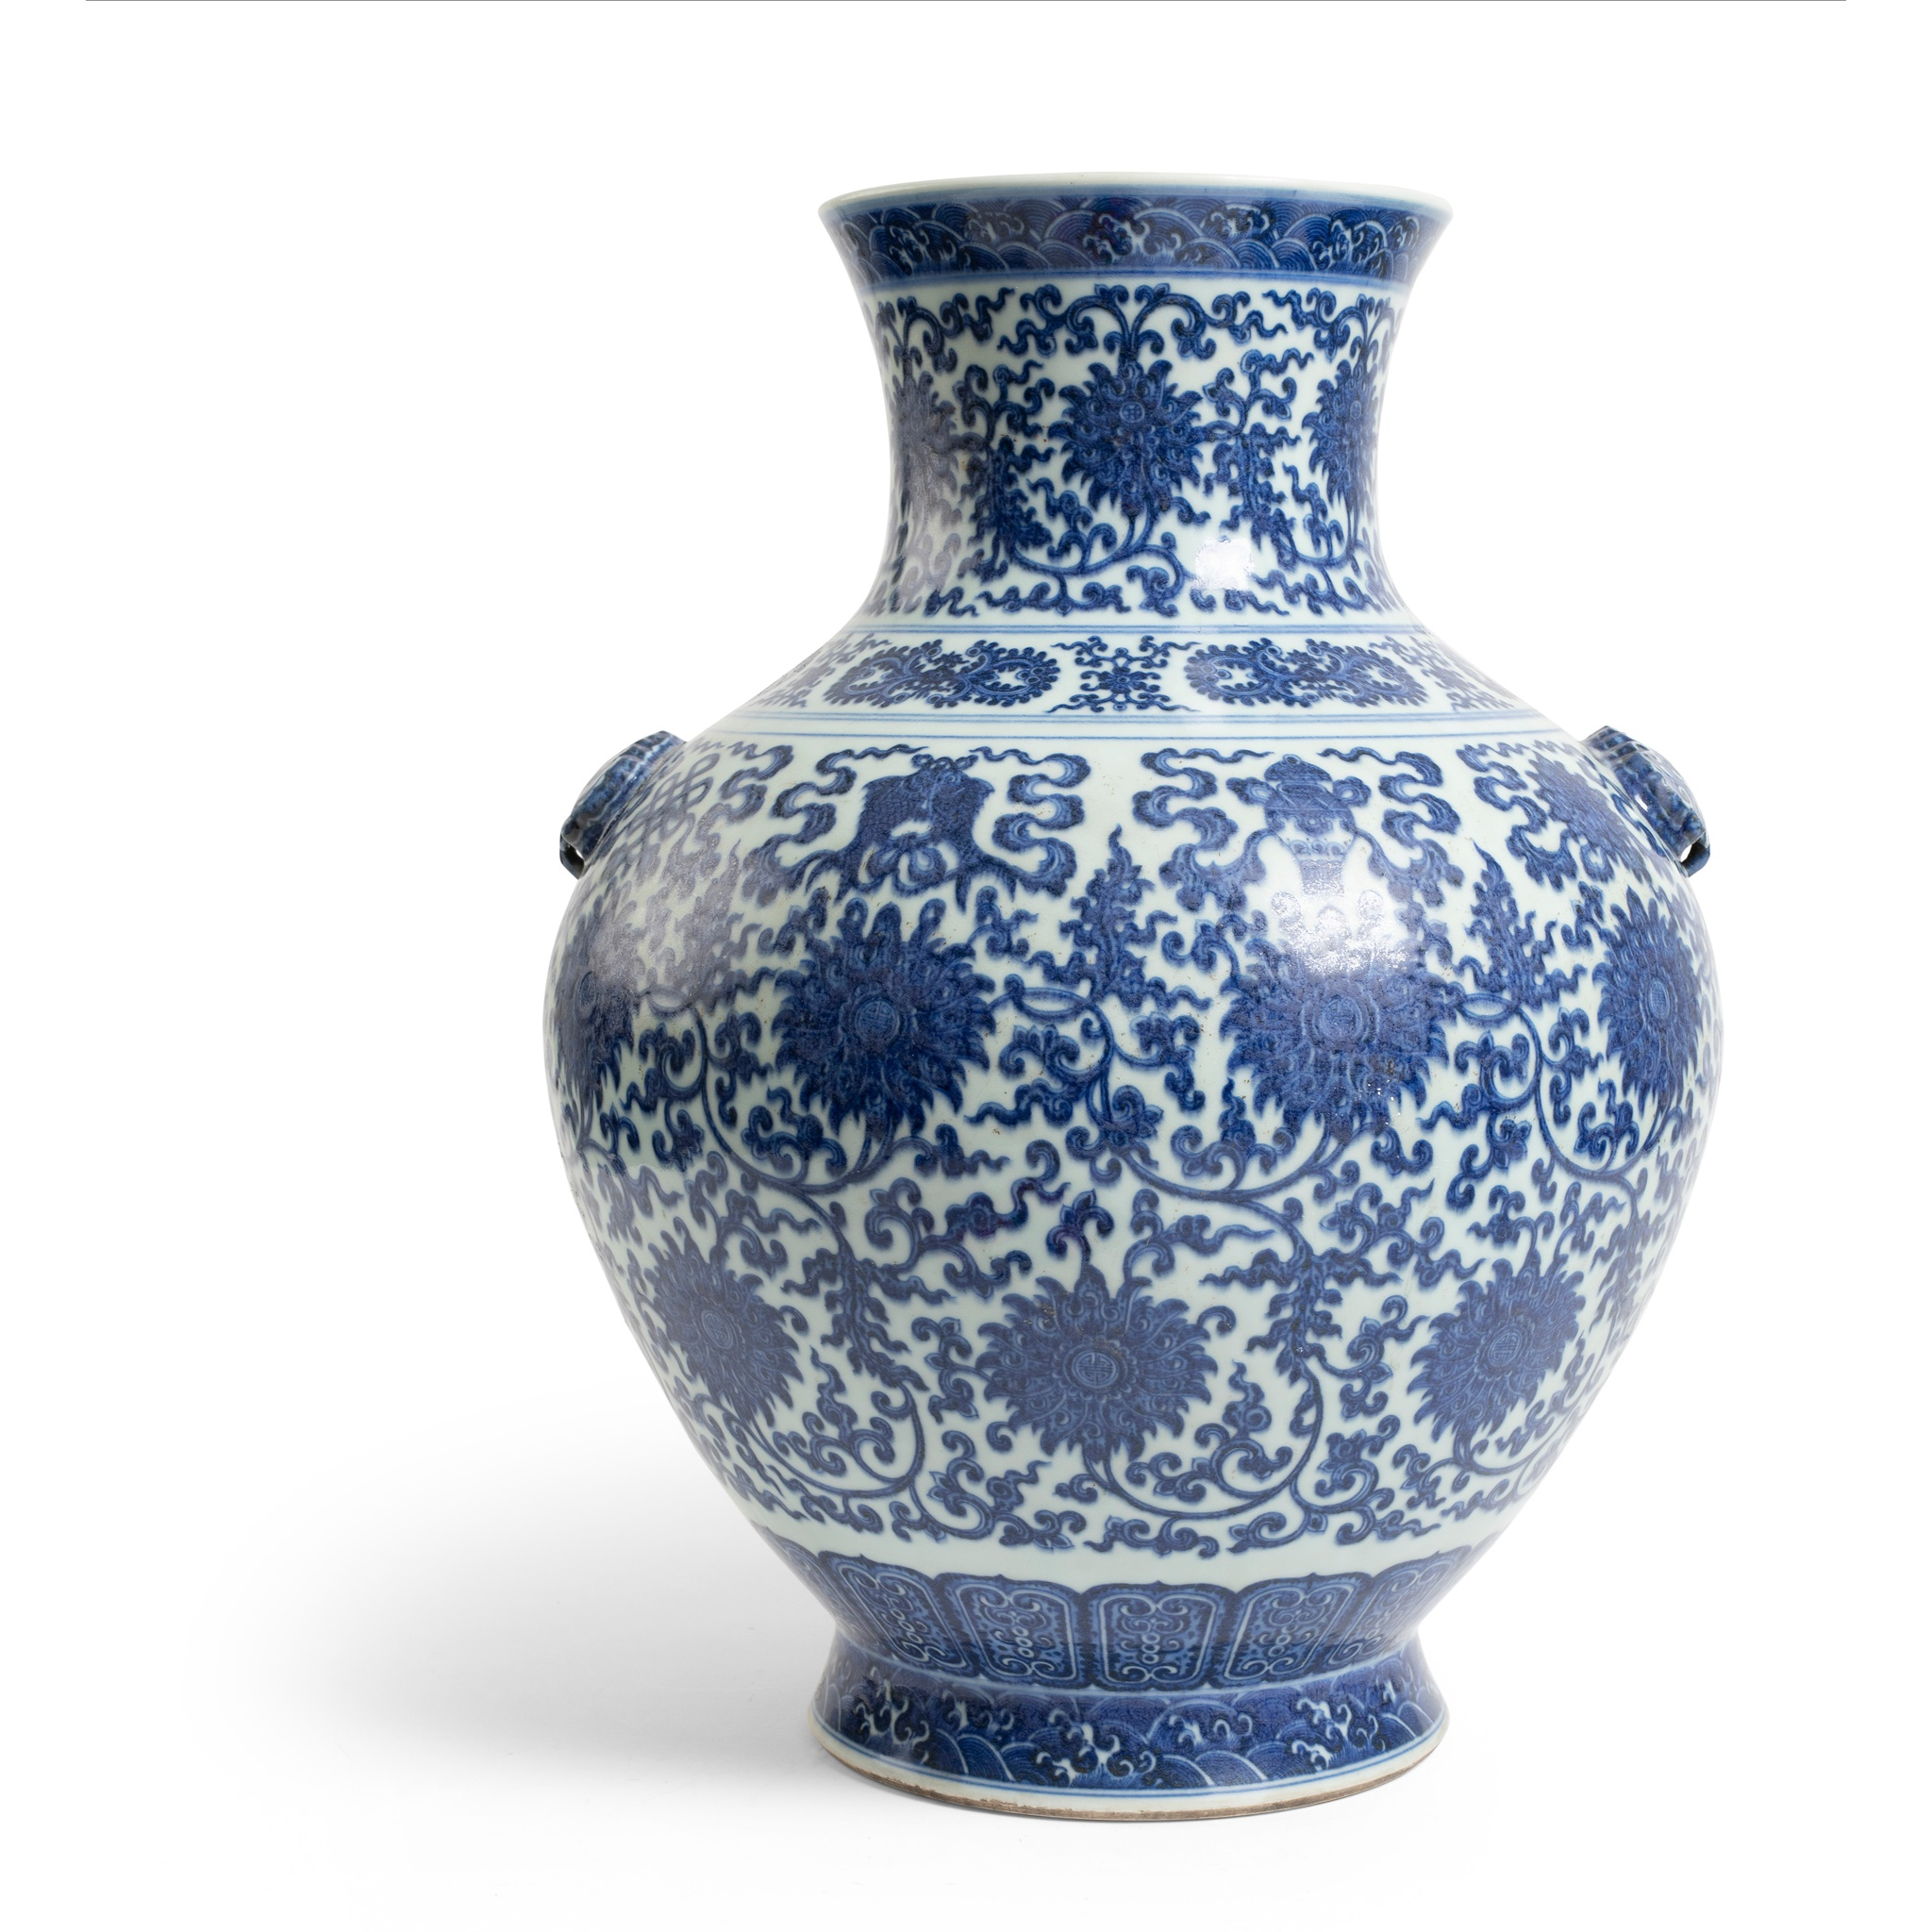 LARGE BLUE AND WHITE 'LOTUS' VASE | QIANLONG MARK, 18TH CENTURY, Provenance: Private English collection, 50cm high